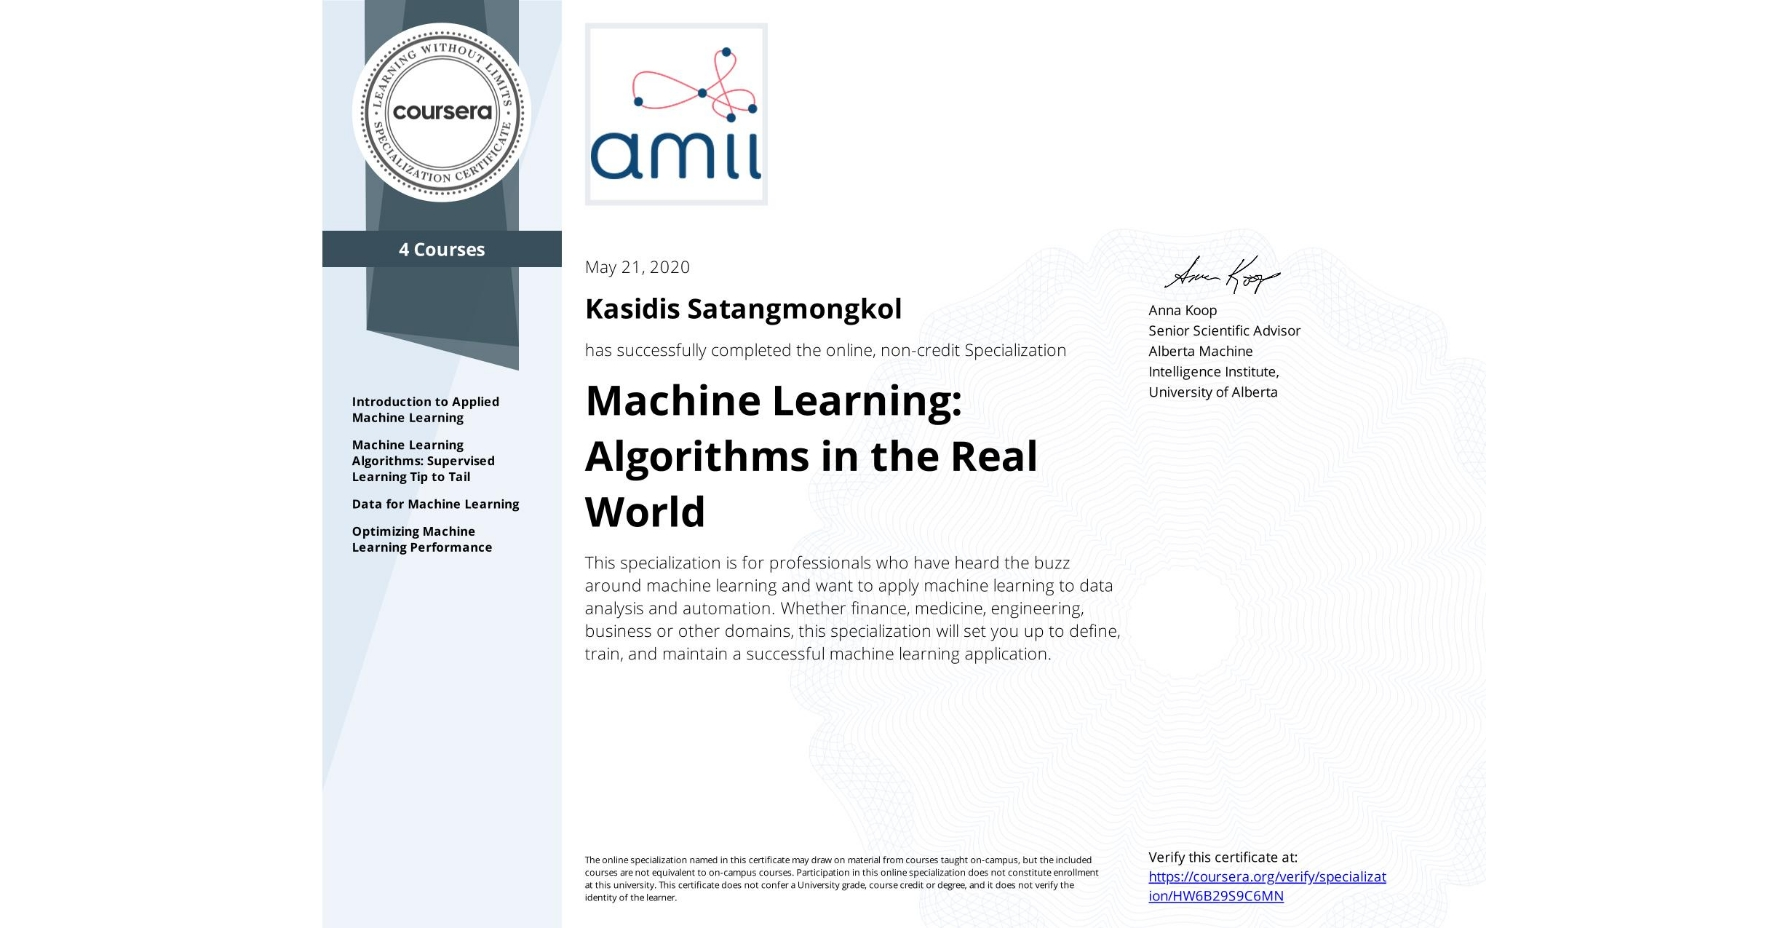 View certificate for KASIDIS SATANGMONGKOL, Machine Learning: Algorithms in the Real World, offered through Coursera. This specialization is for professionals who have heard the buzz around machine learning and want to apply machine learning to data analysis and automation. Whether finance, medicine, engineering, business or other domains, this specialization will set you up to define, train, and maintain a successful machine learning application.